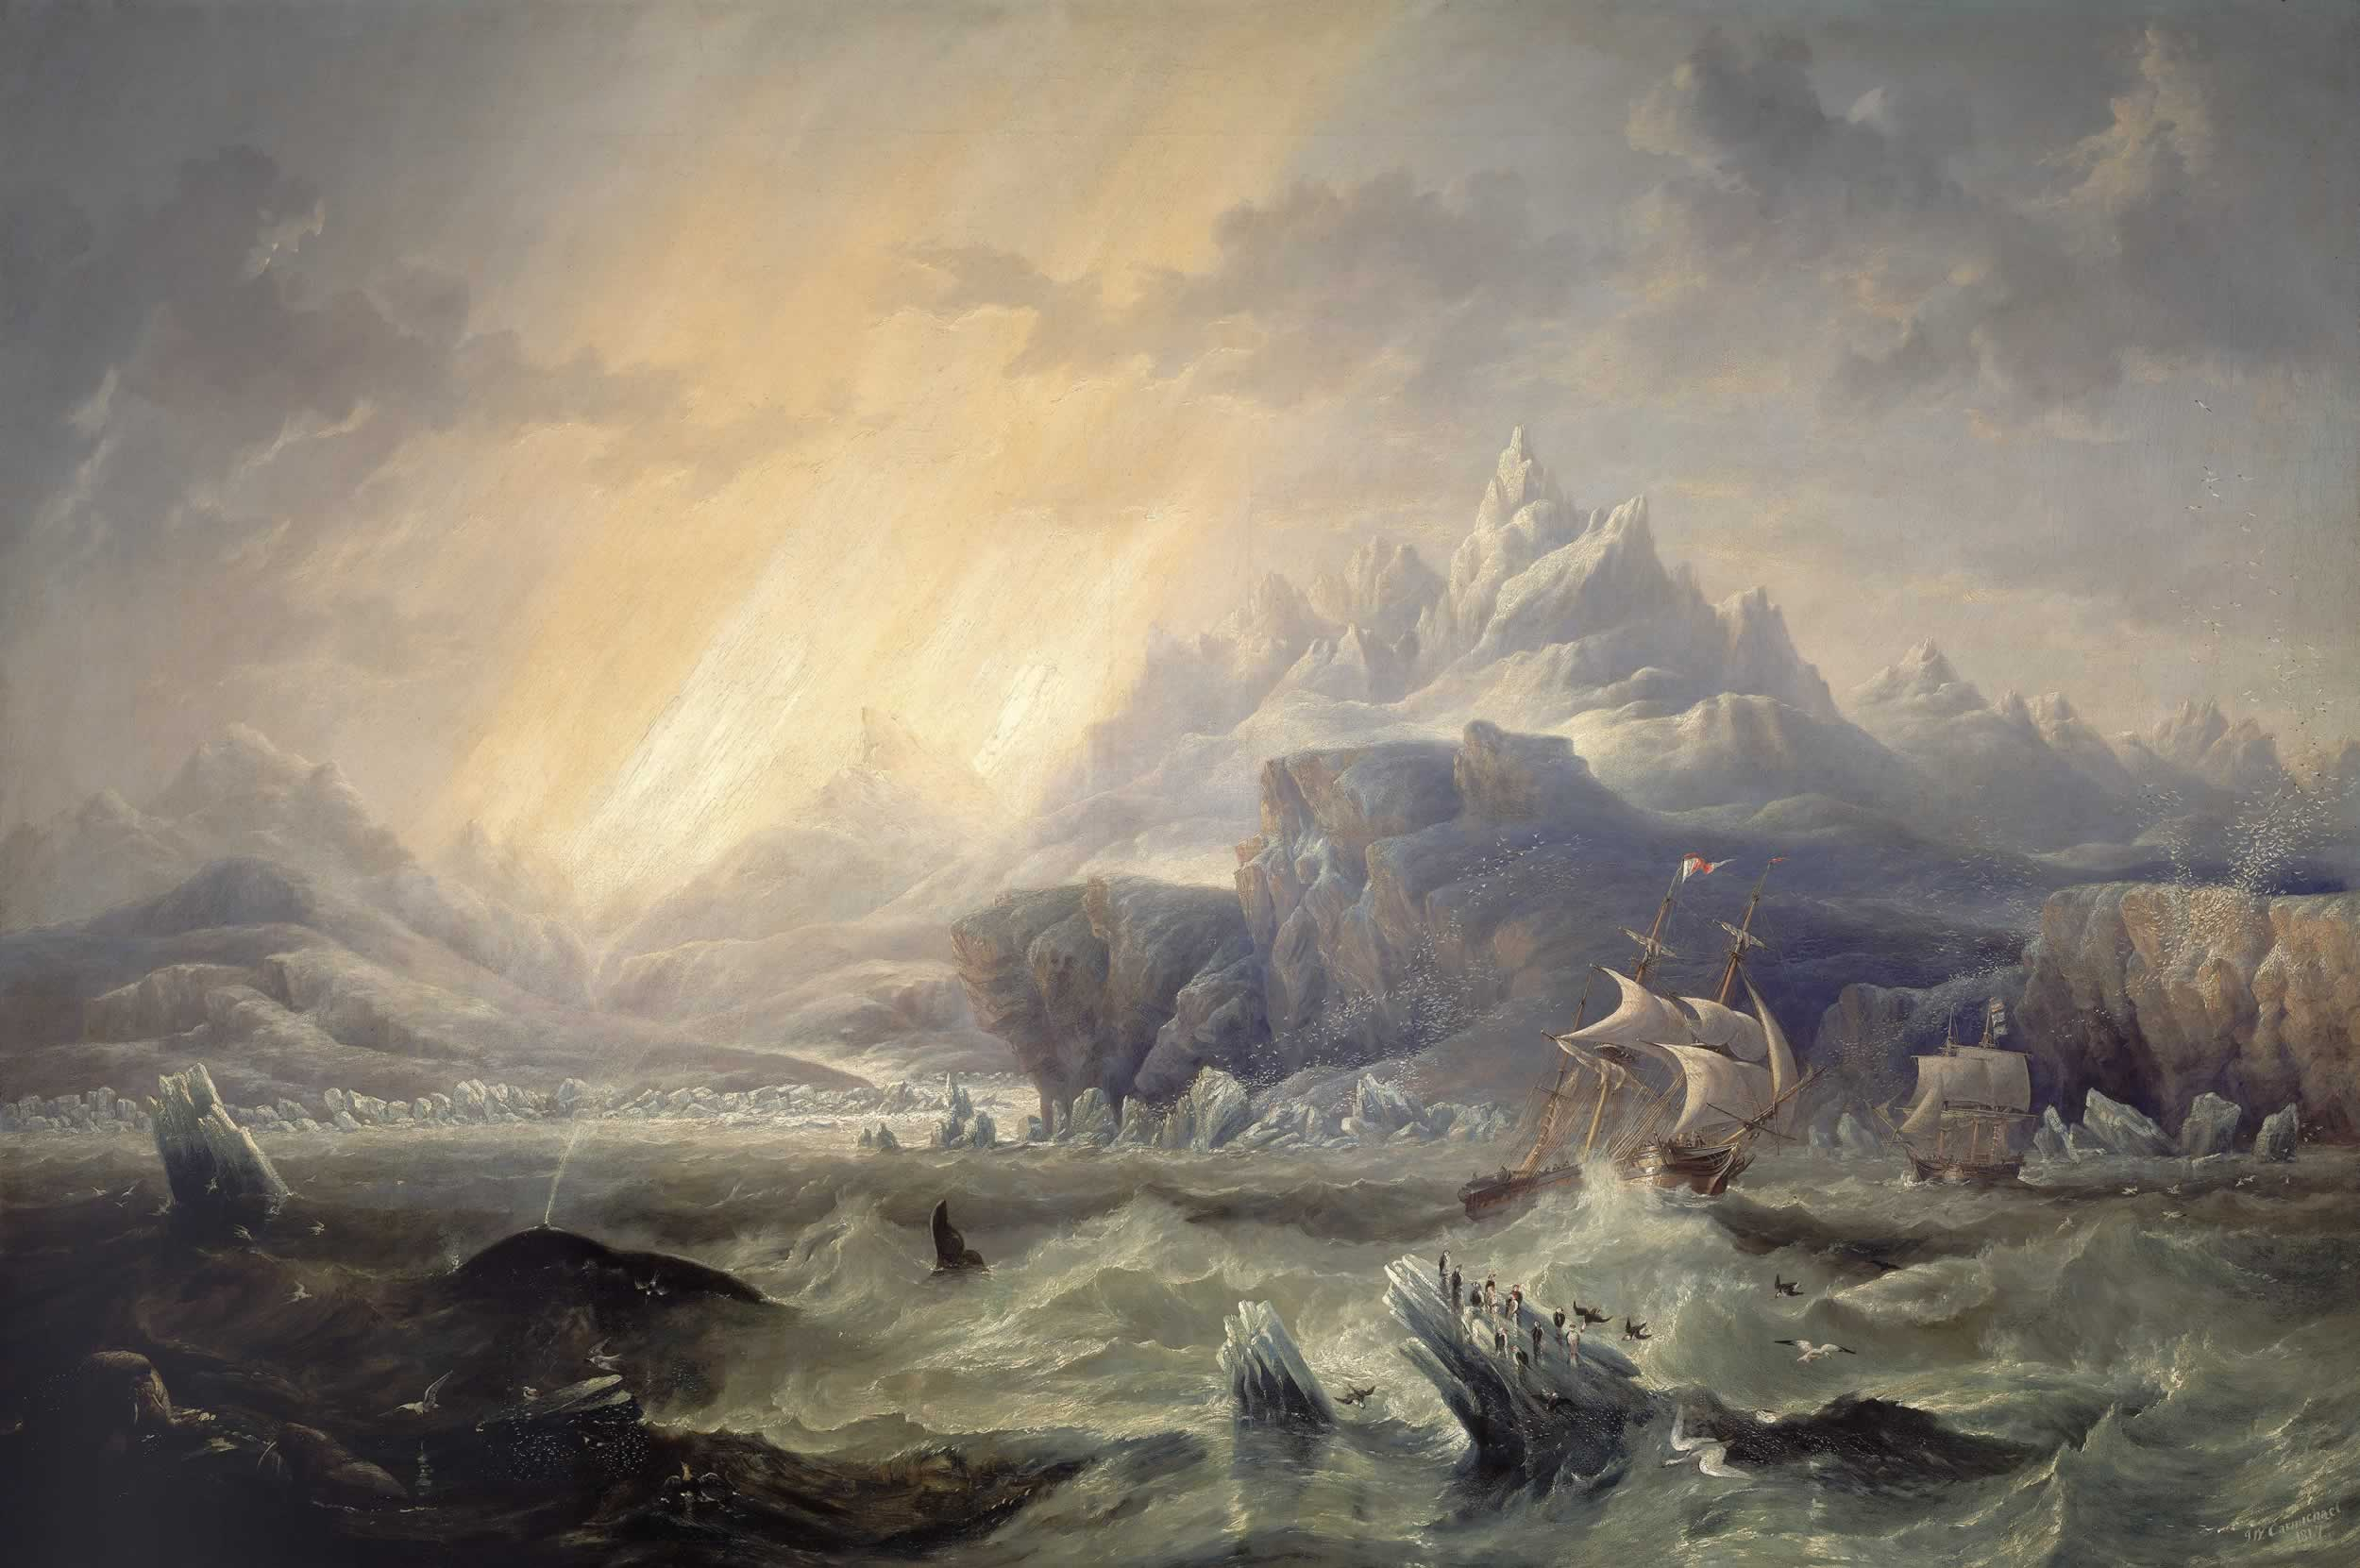 https://upload.wikimedia.org/wikipedia/commons/a/ad/HMS_Erebus_and_Terror_in_the_Antarctic_by_John_Wilson_Carmichael.jpg